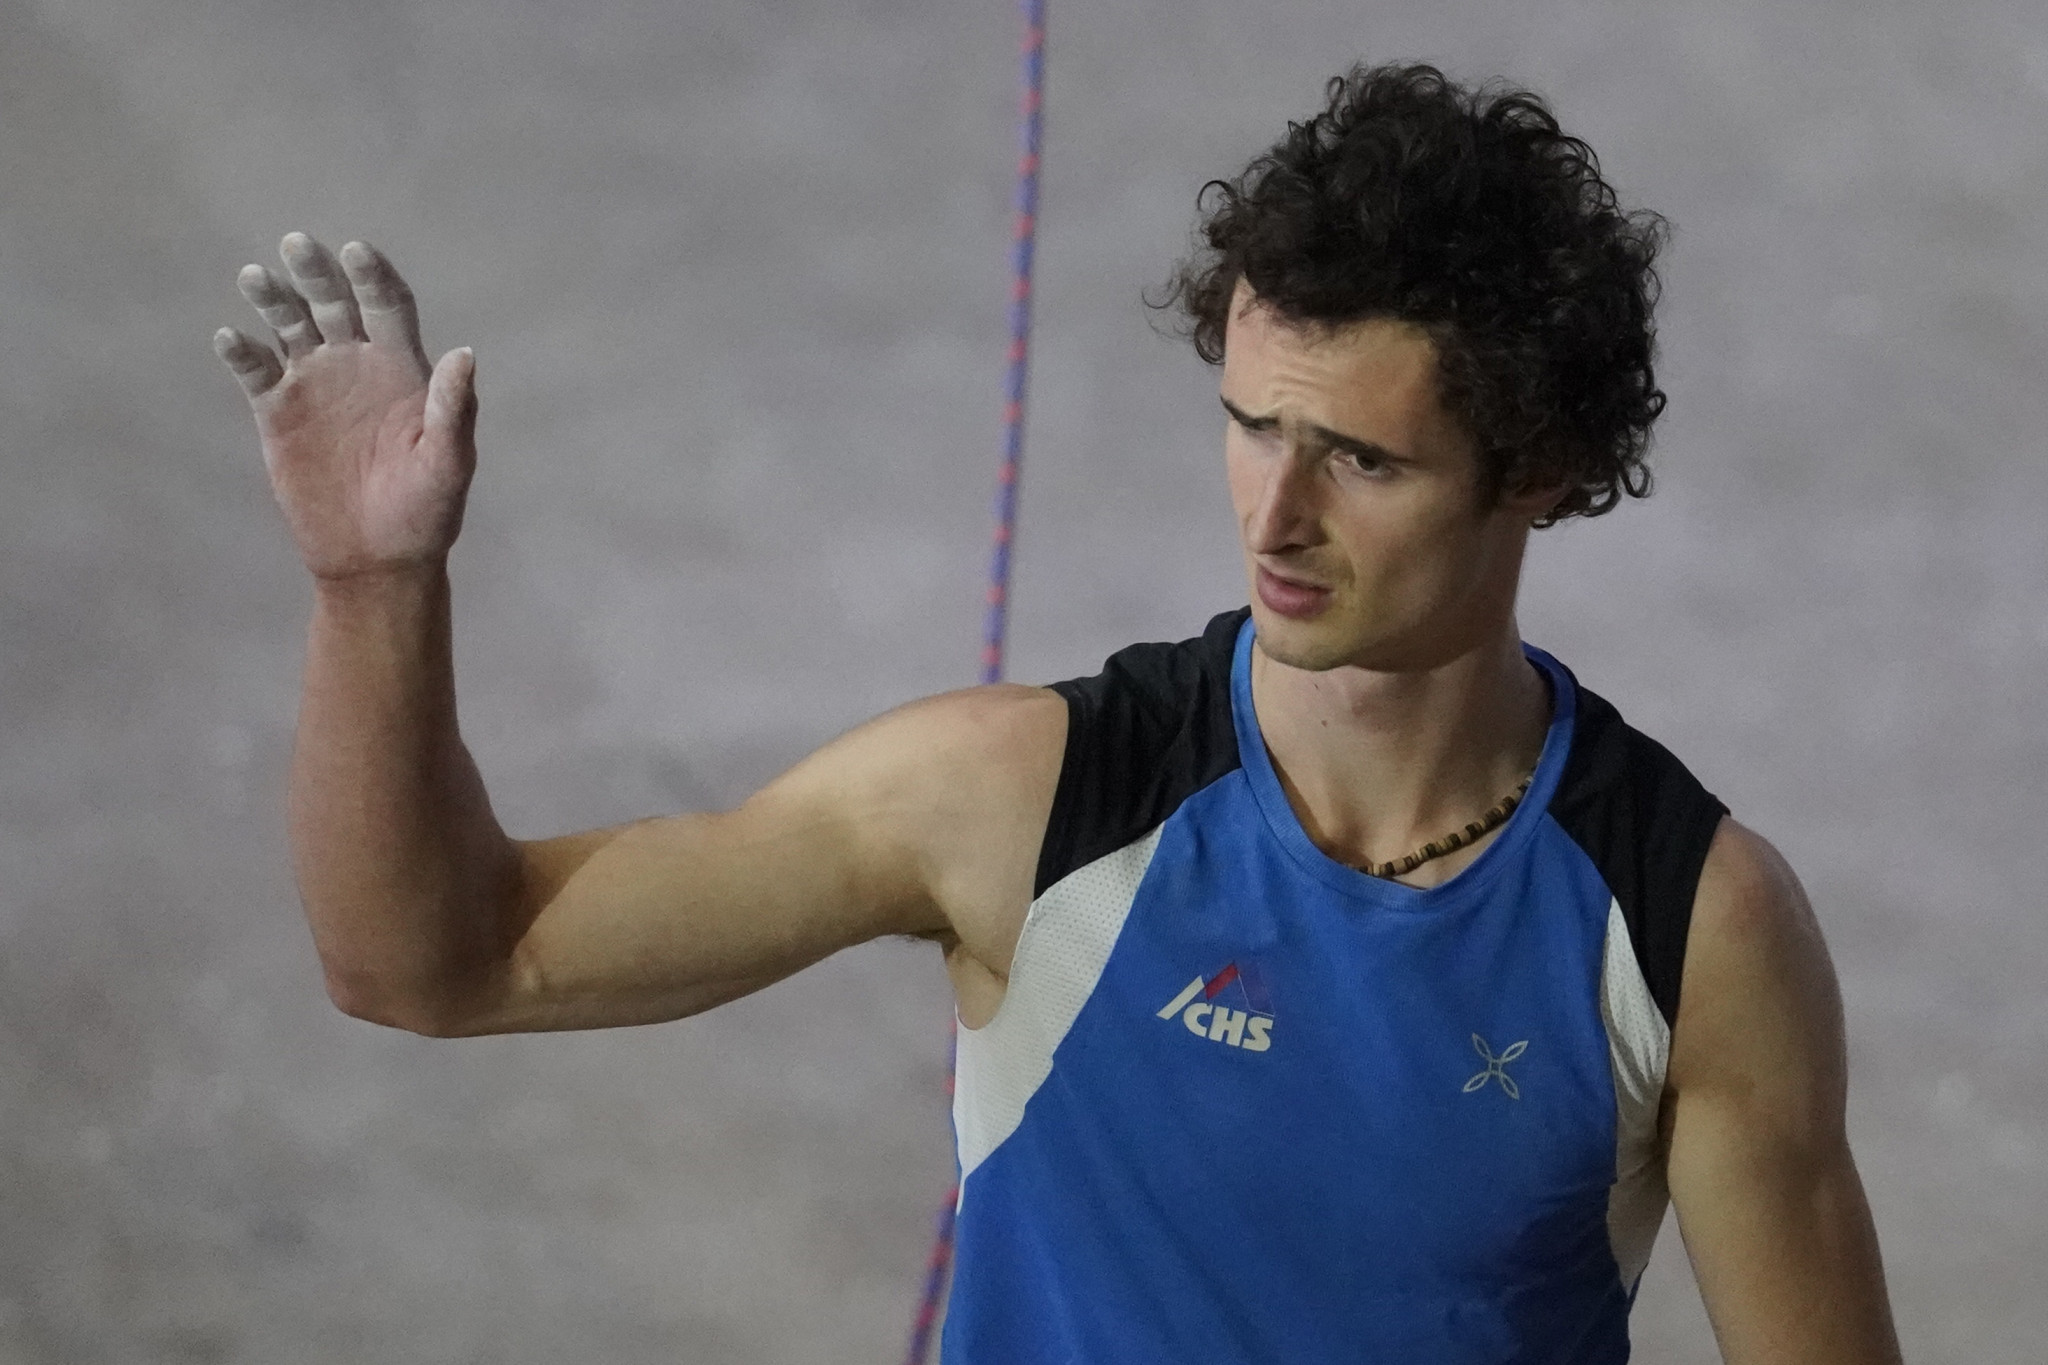 Newly-crowned lead world champion Adam Ondra proved his dominance again with victory at the IFSC World Cup in Kranj ©Getty Images